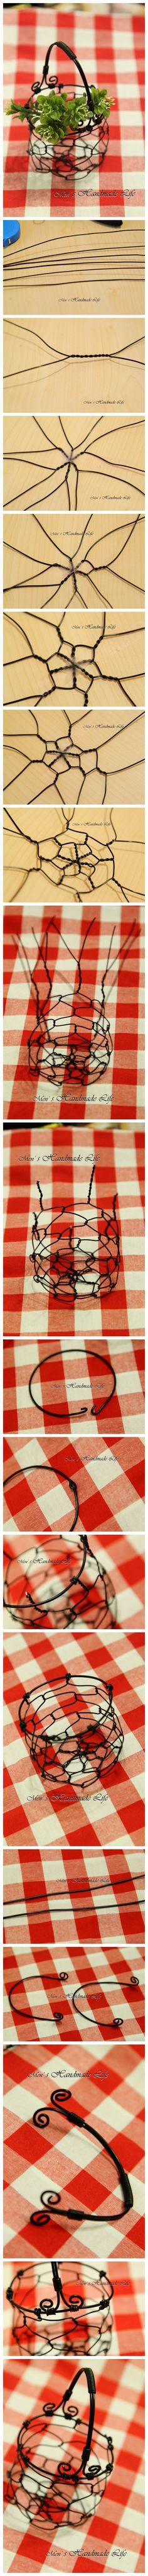 wire basket tutorial